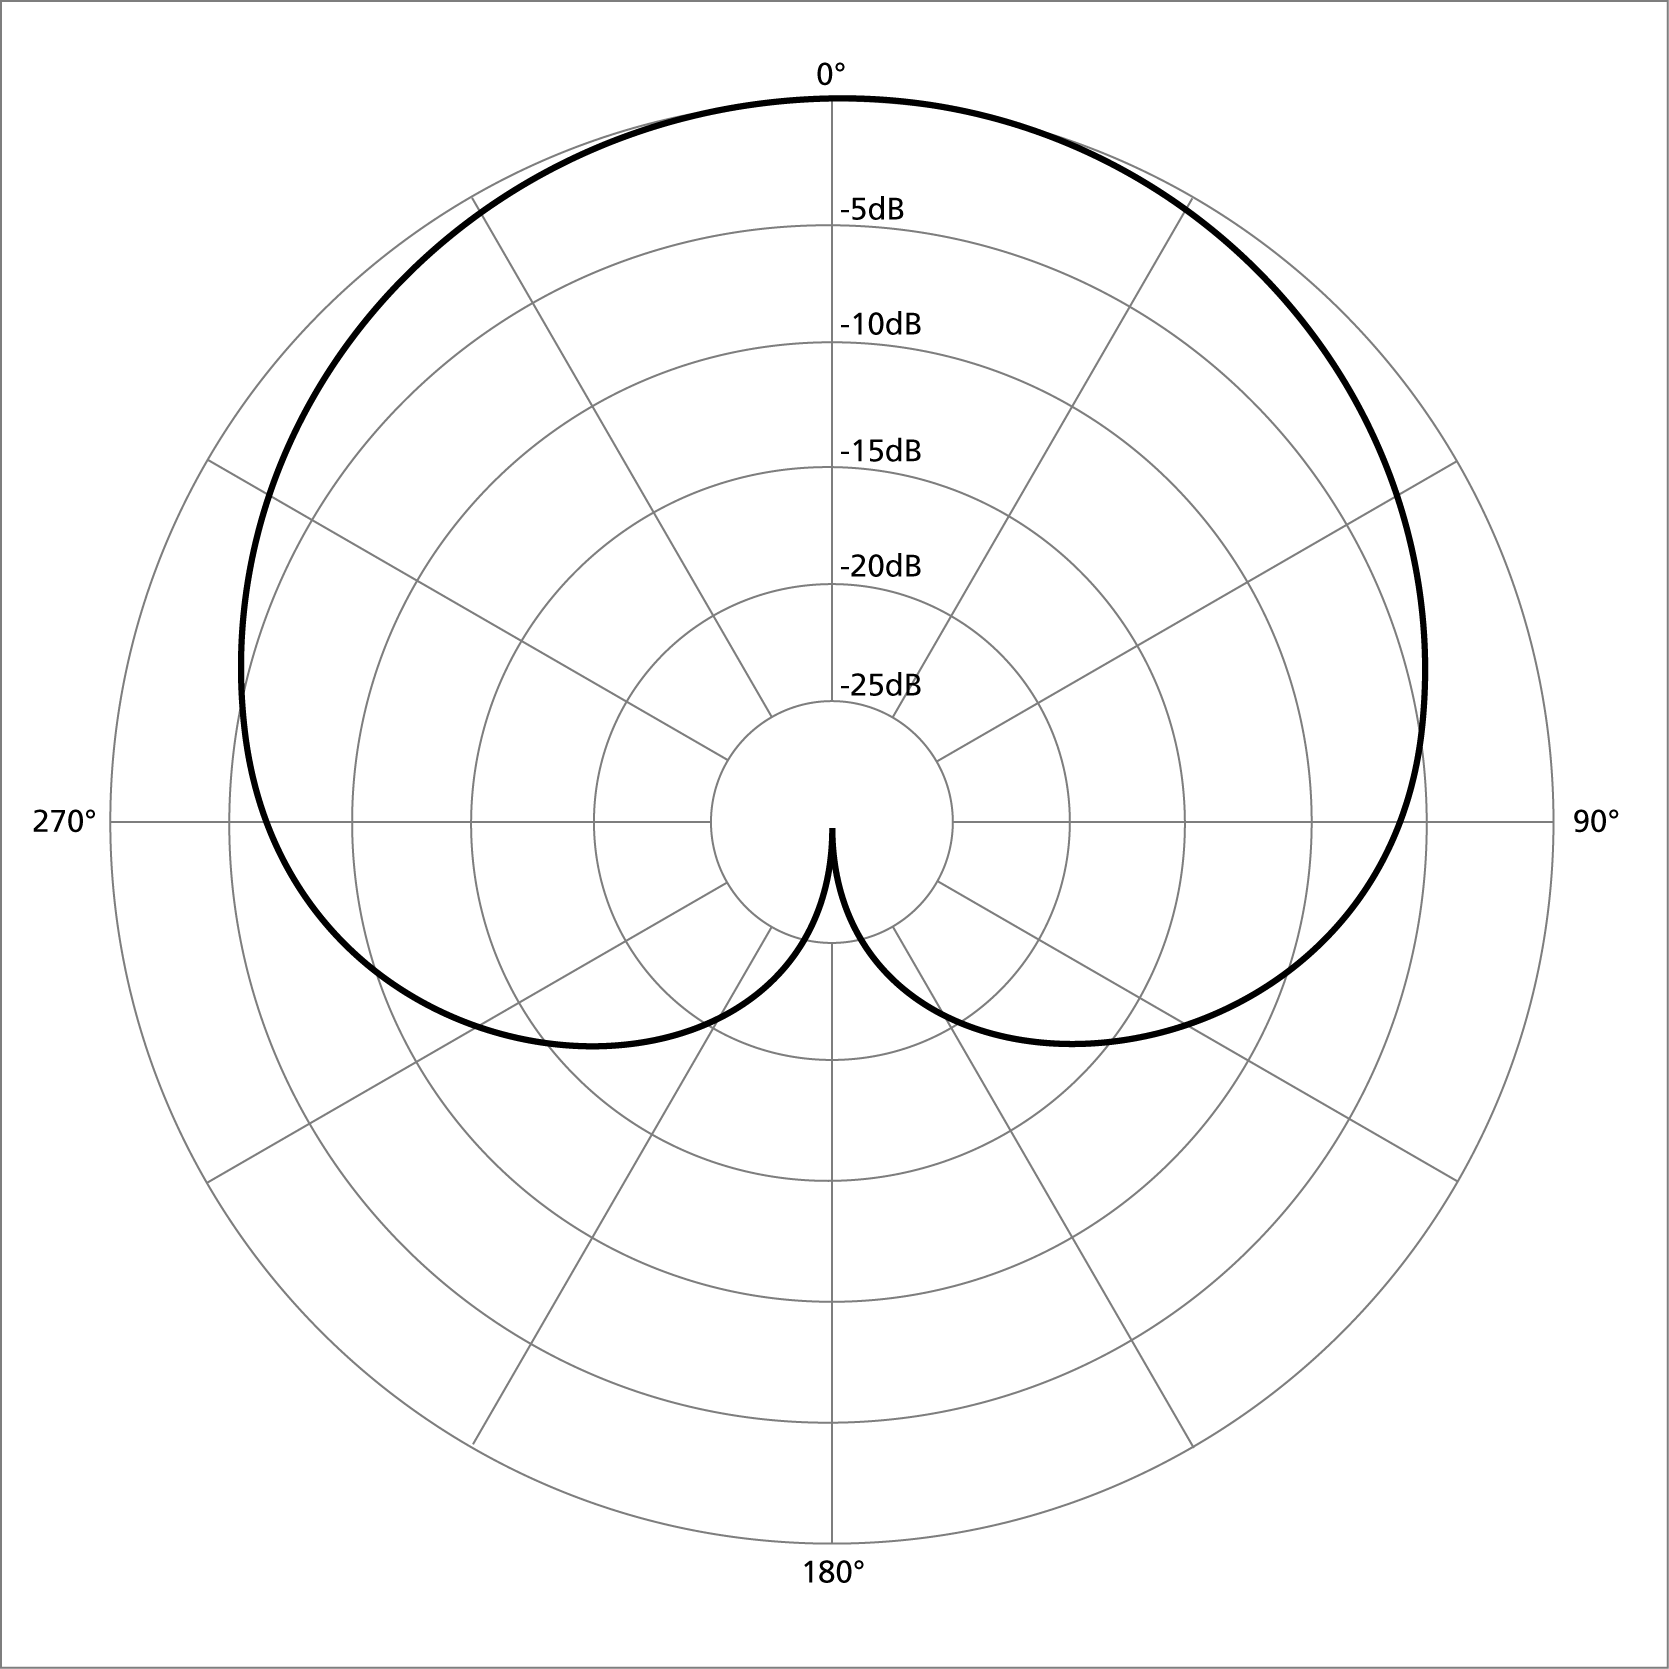 Is It Just Me Or Do Cardioid Polar Patterns Look More Like